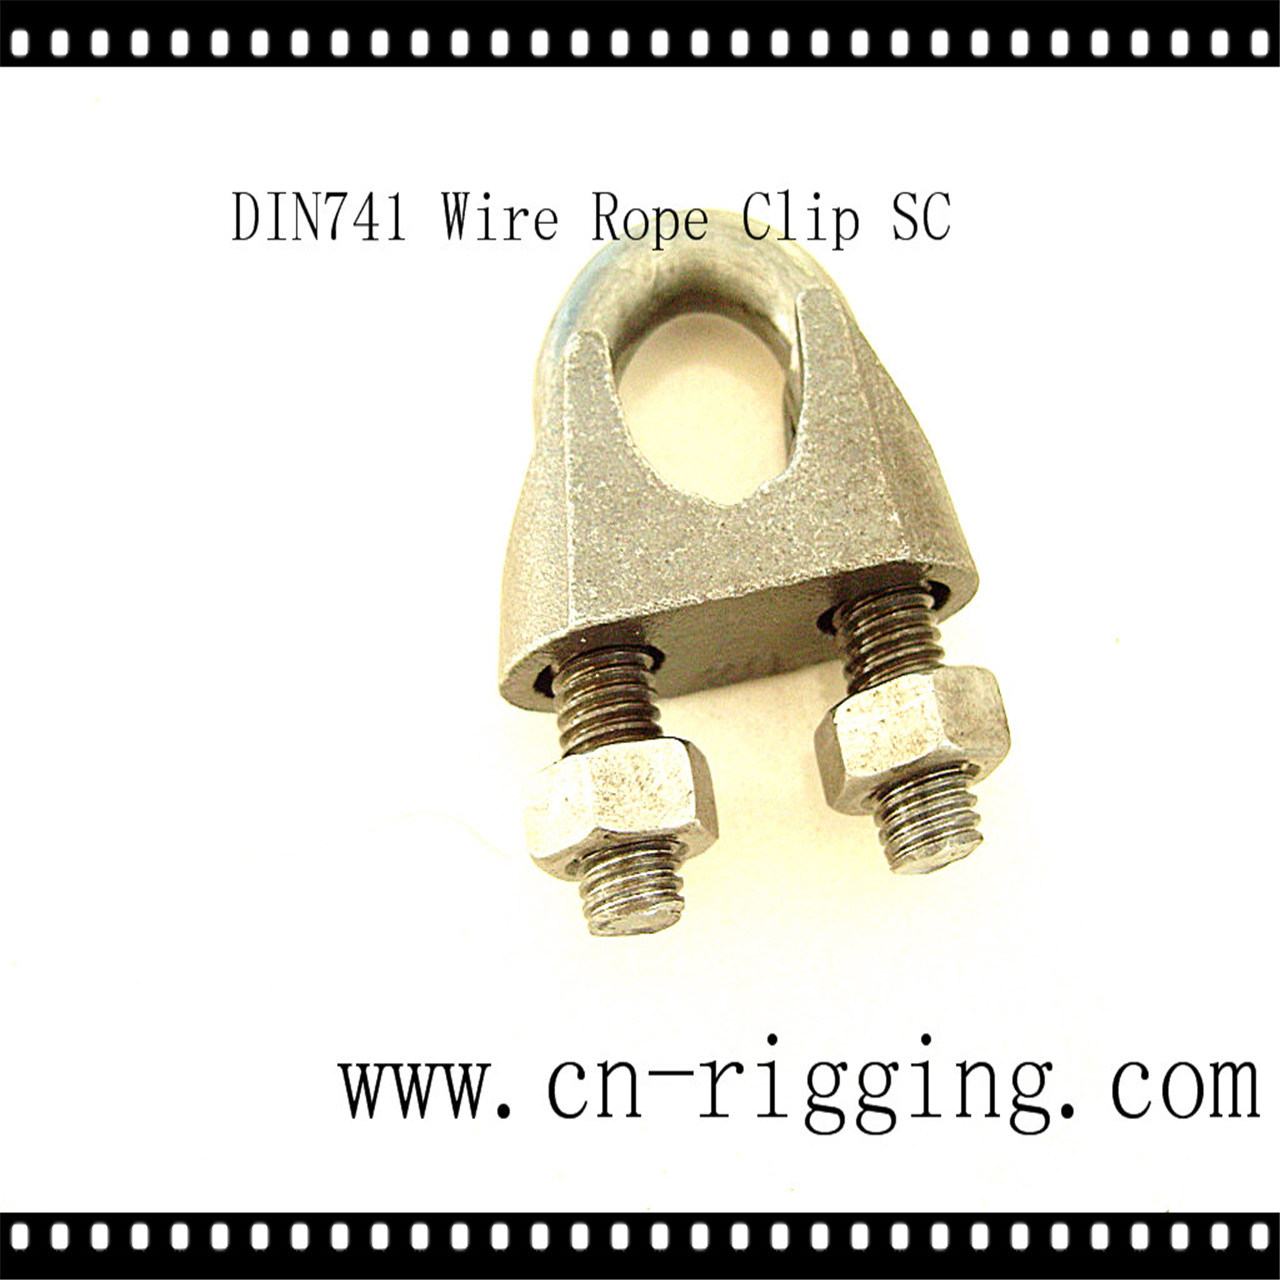 Hot Sale Wire Rope Clip DIN741 for Eye Loop Connection